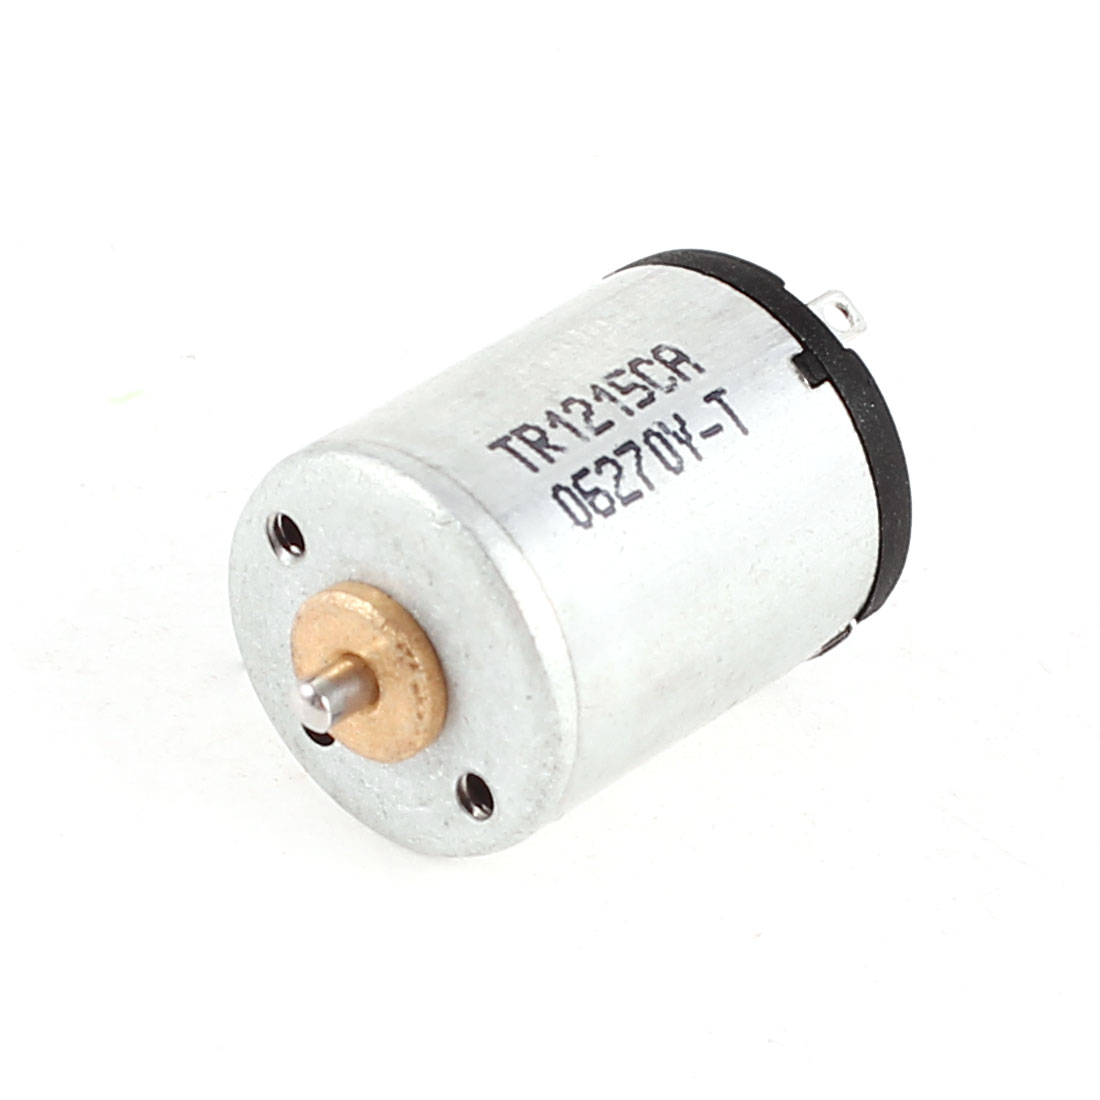 RC Model Toys DIY Electric Mini Motor 12x15mm DC1.25-3.7V 22000RPM